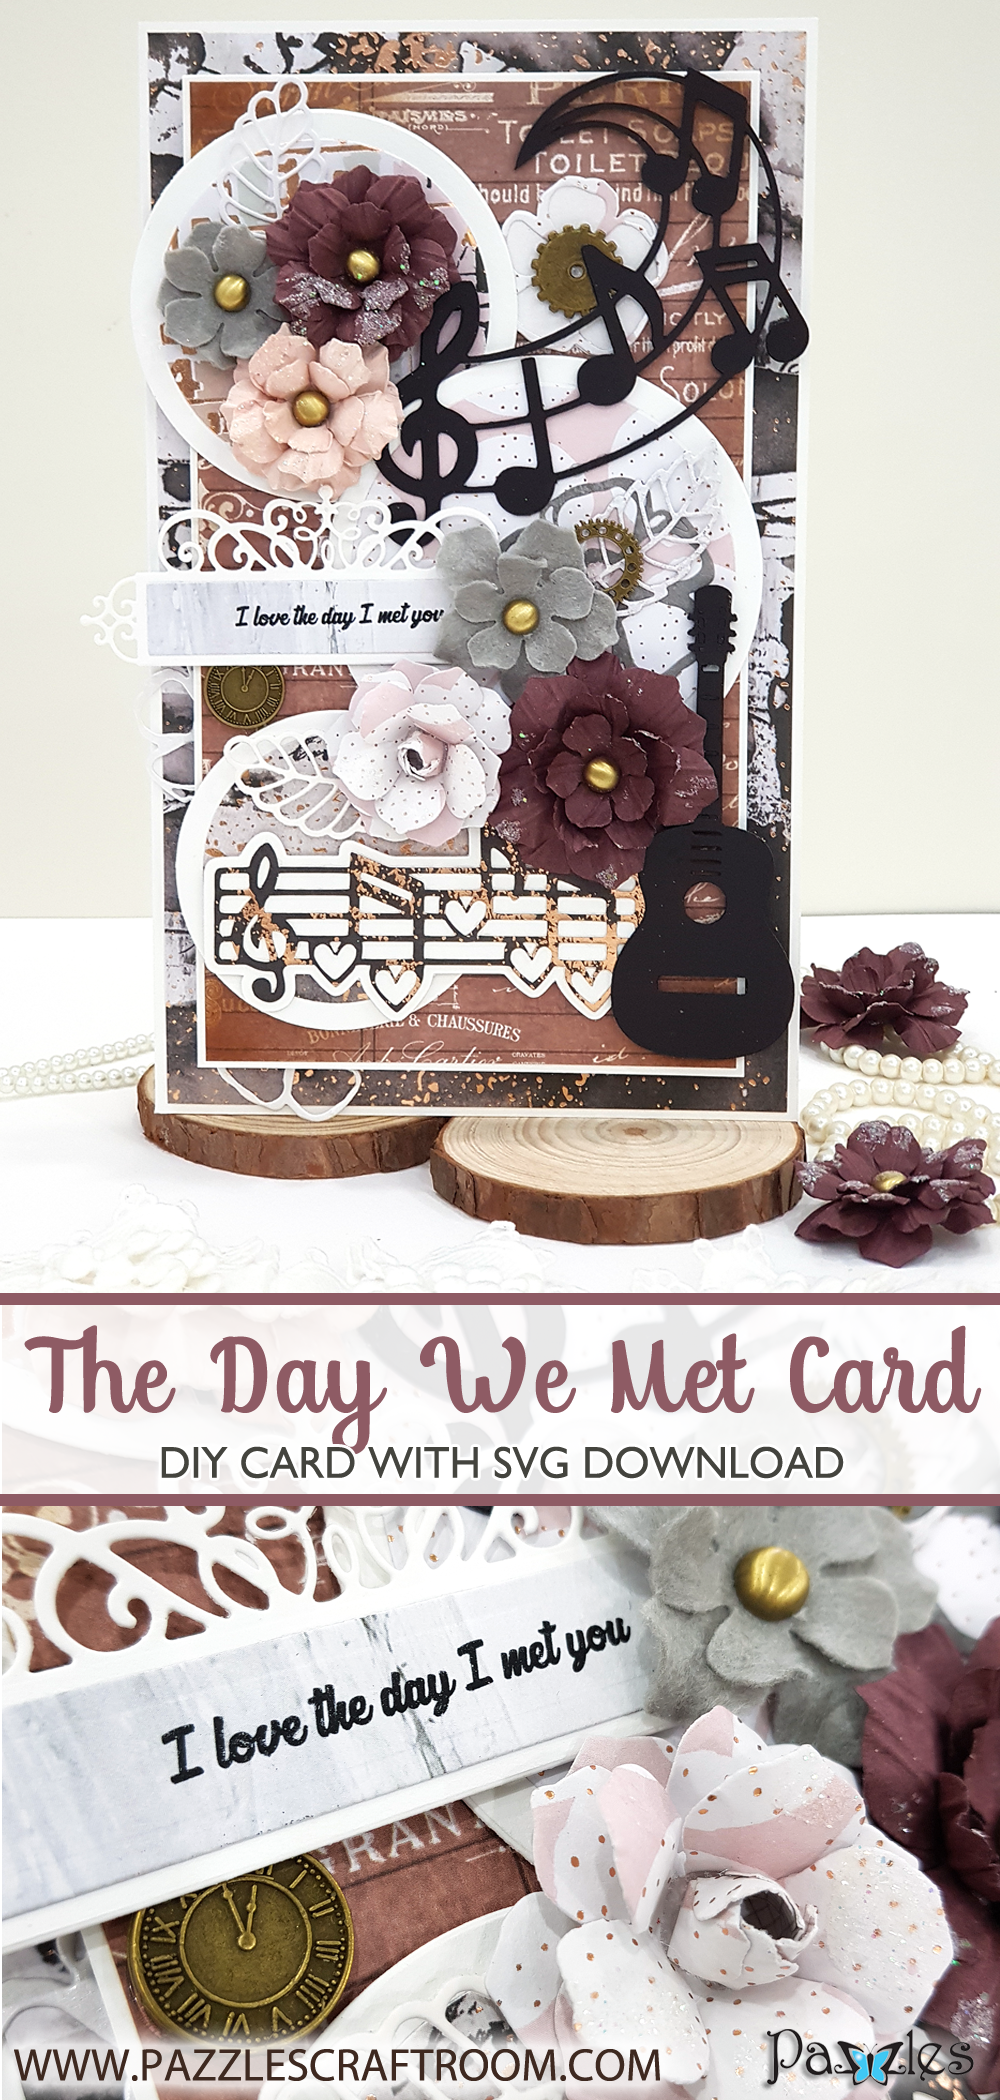 Pazzles DIY Music Love Handmade Card with instant SVG download. Compatible with all major electronic cutters including Pazzles Inspiration, Cricut, and Silhouette Cameo. Design by Nida Tanweer.